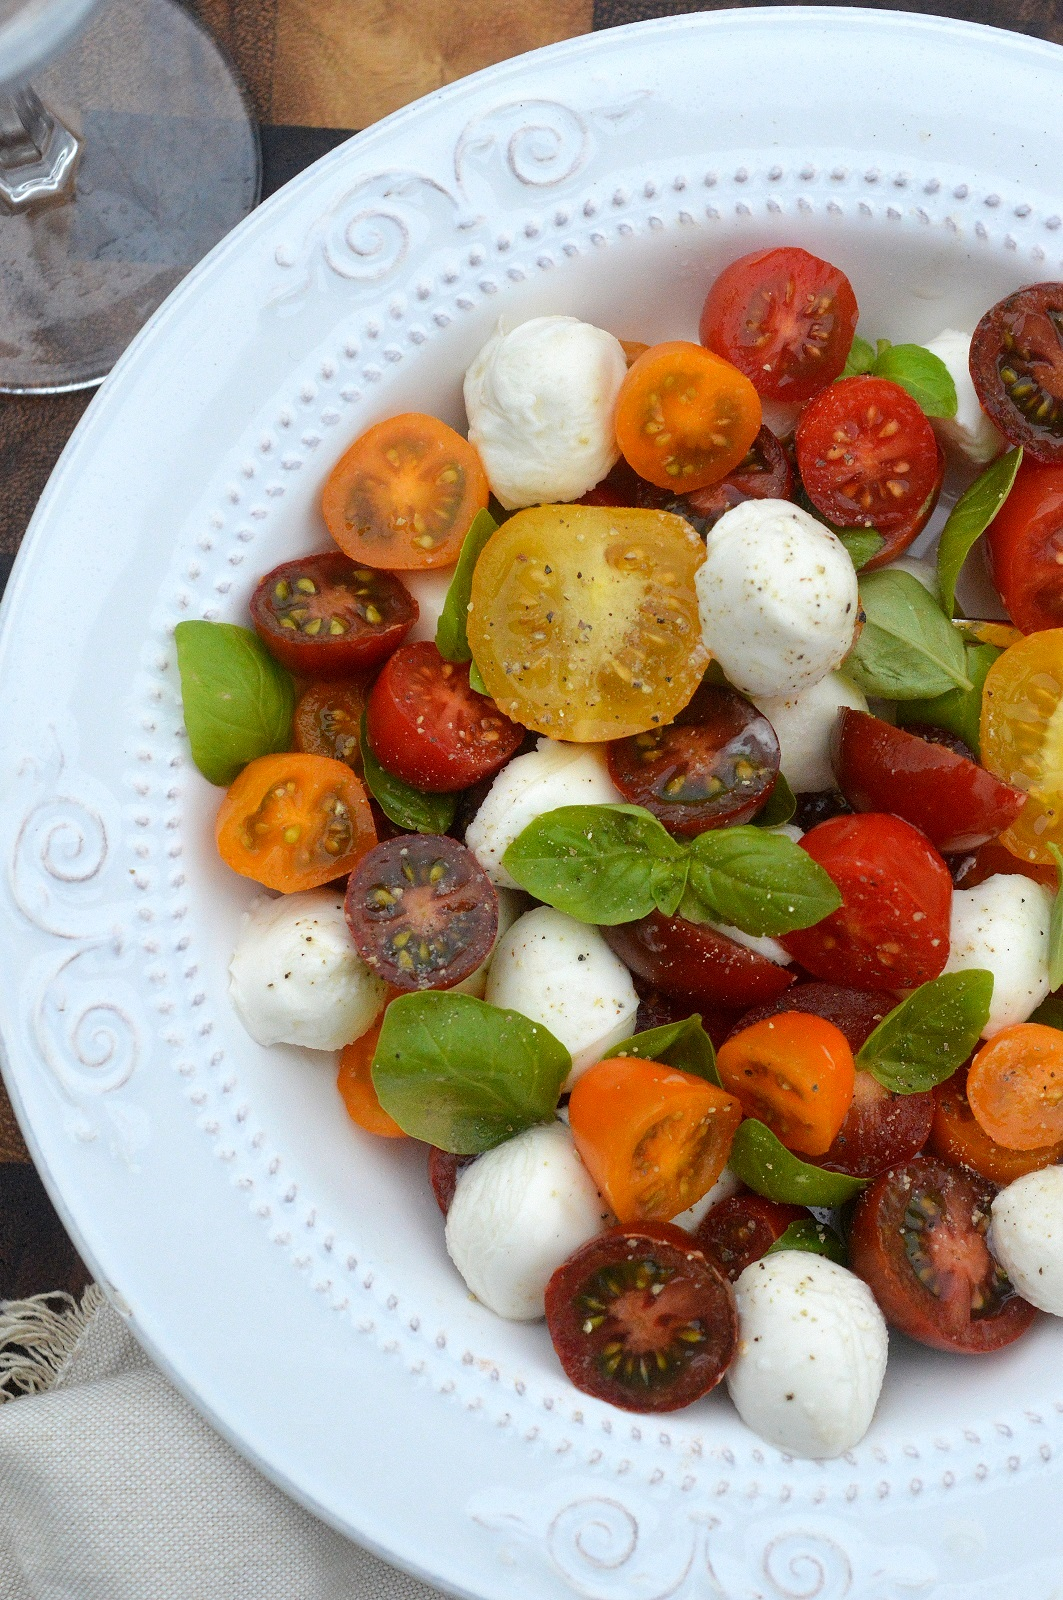 Liven up your Caprese Salad with colorful artisan or heirloom tomatoes, mmmm